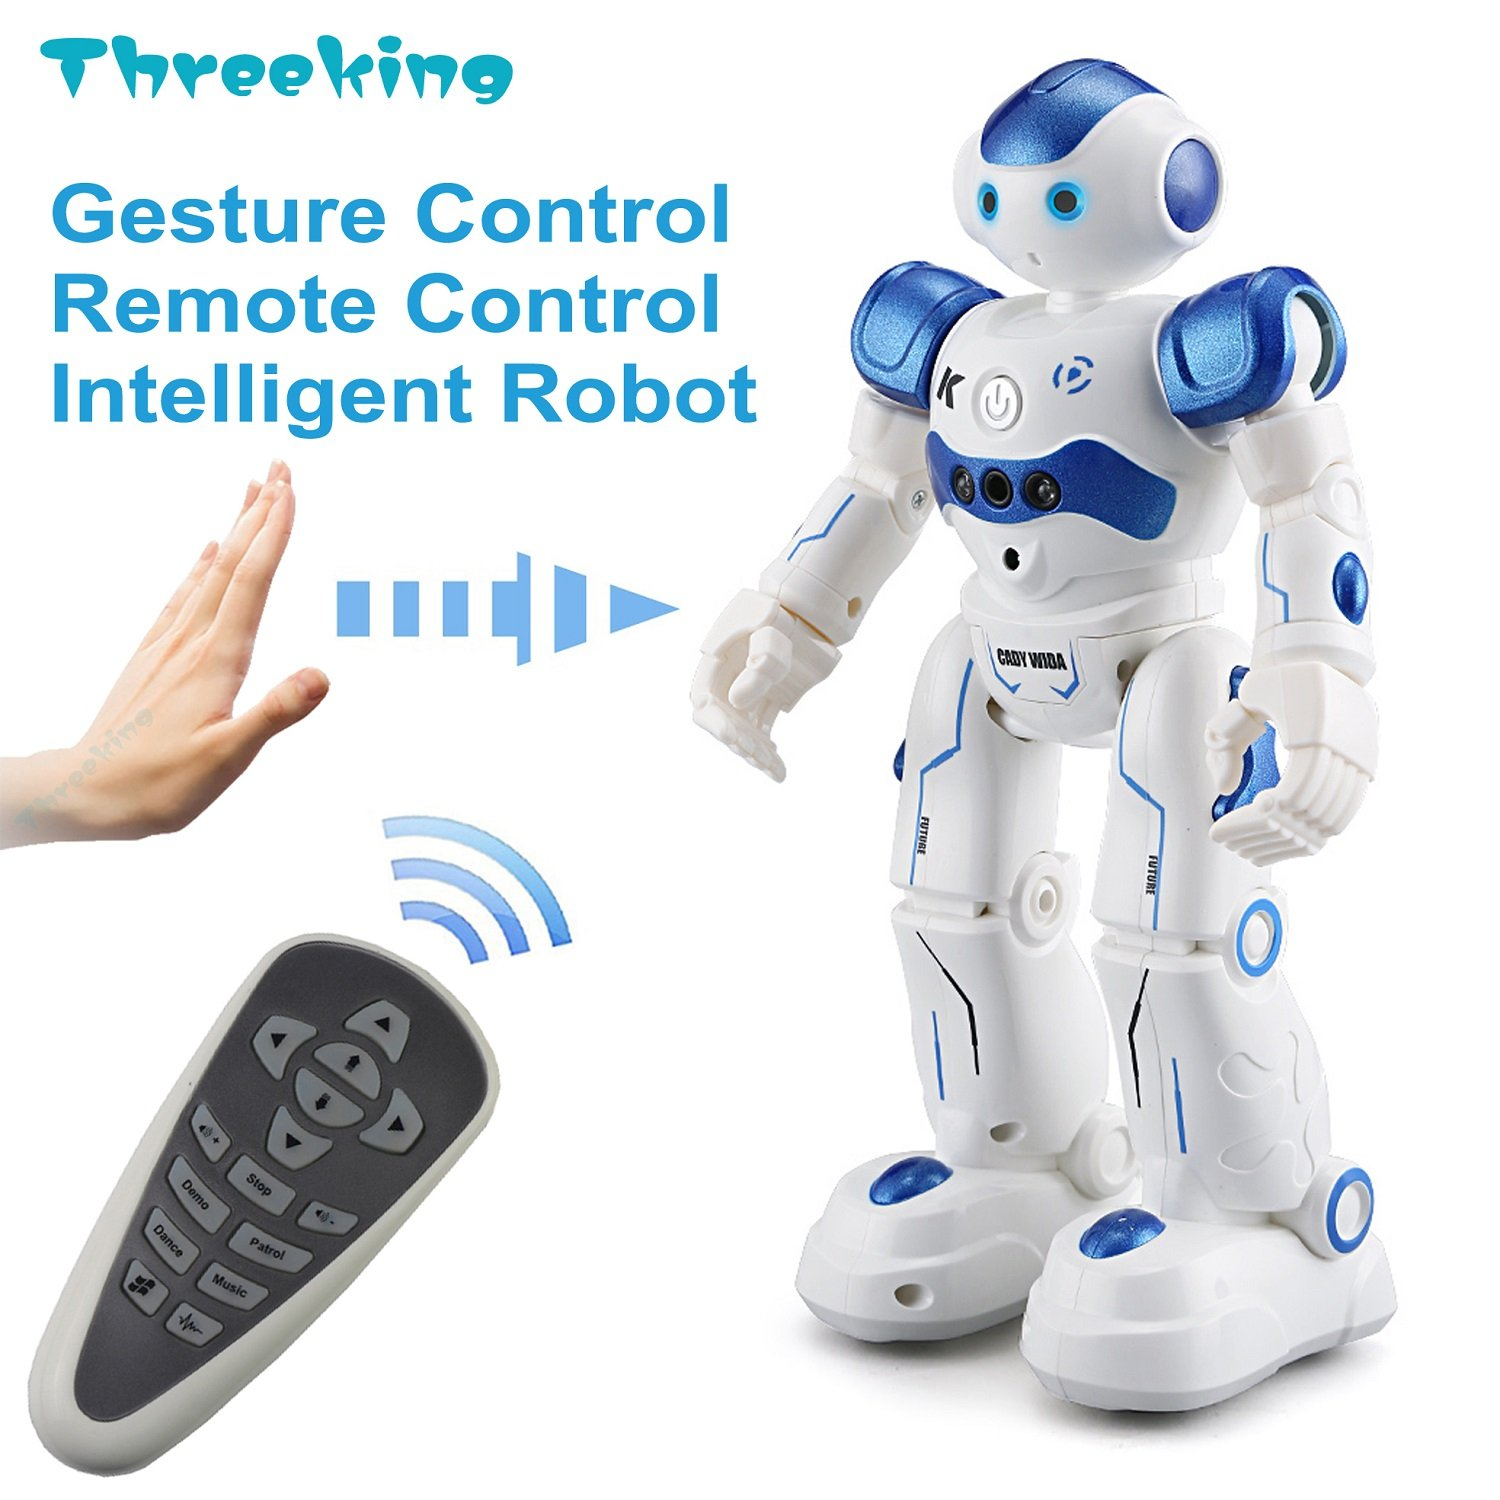 Threeking Smart Robot Toys Gesture Control Remote Control Robot JJRC Robot Gift for Boys Girls Kidu0027s  sc 1 st  Amazon.com & Birthday Gift for 11 Year Old Boy: Amazon.com